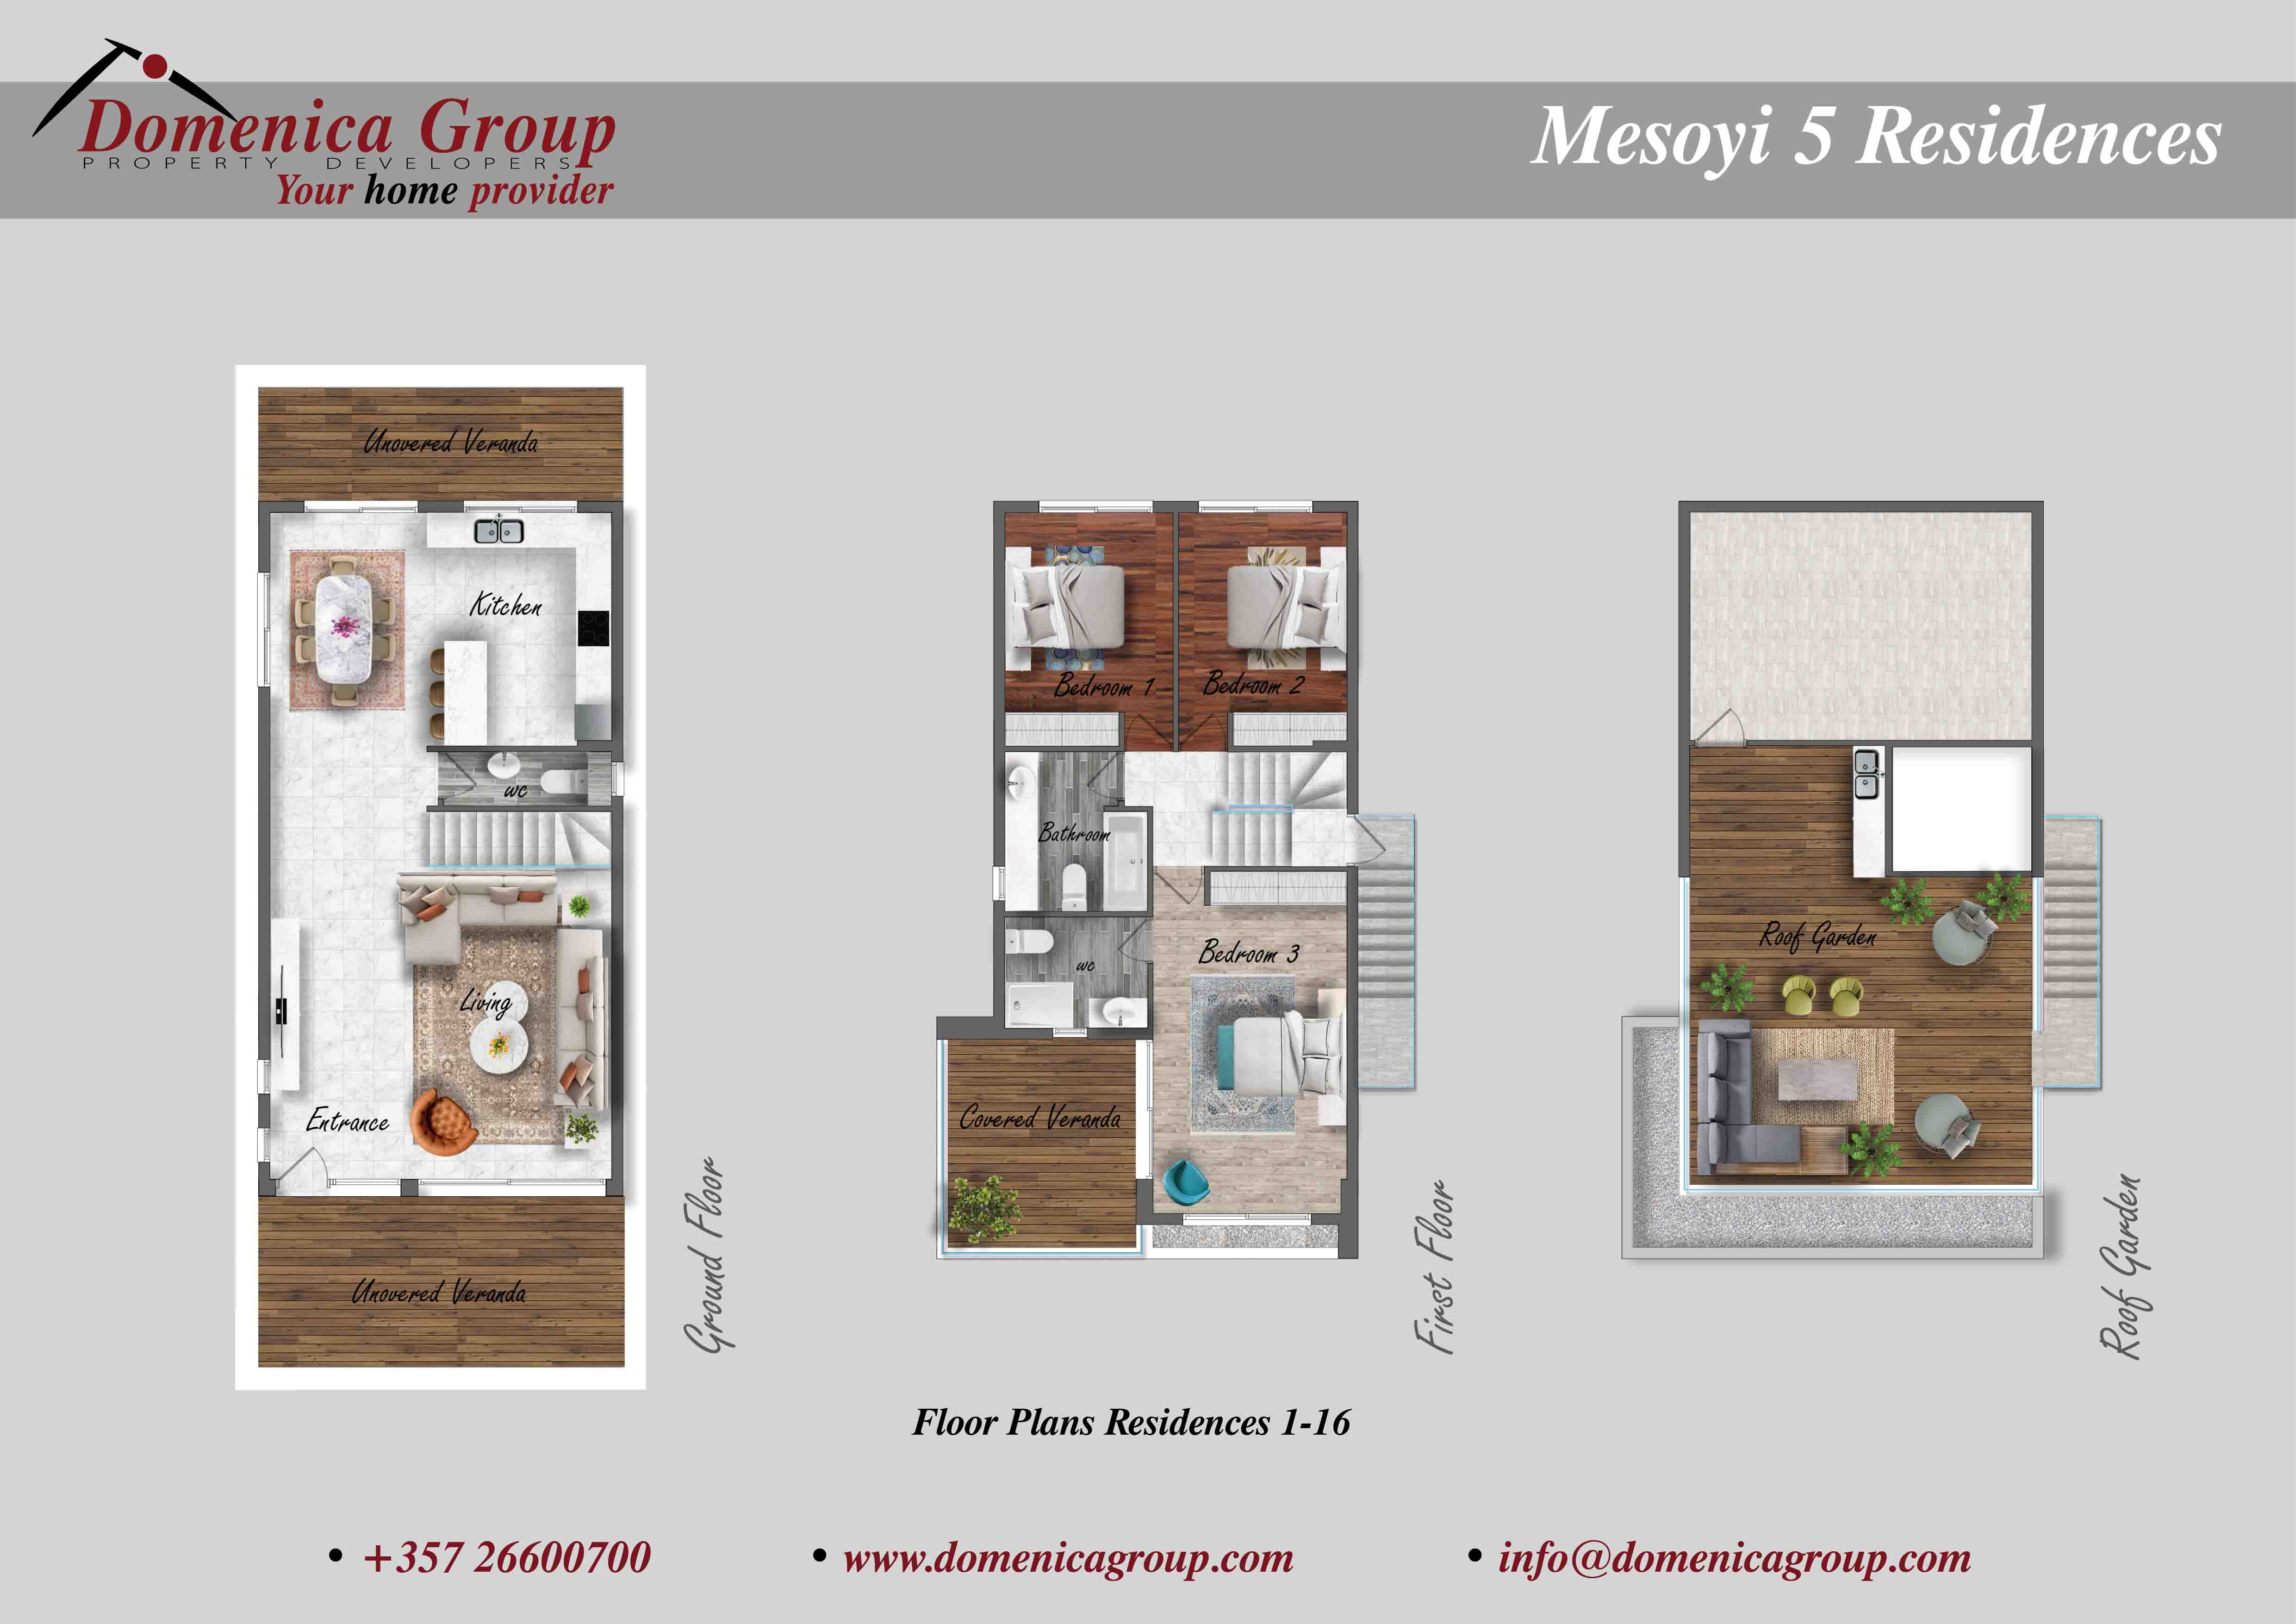 Mesogi 5 Residences floor plans low res